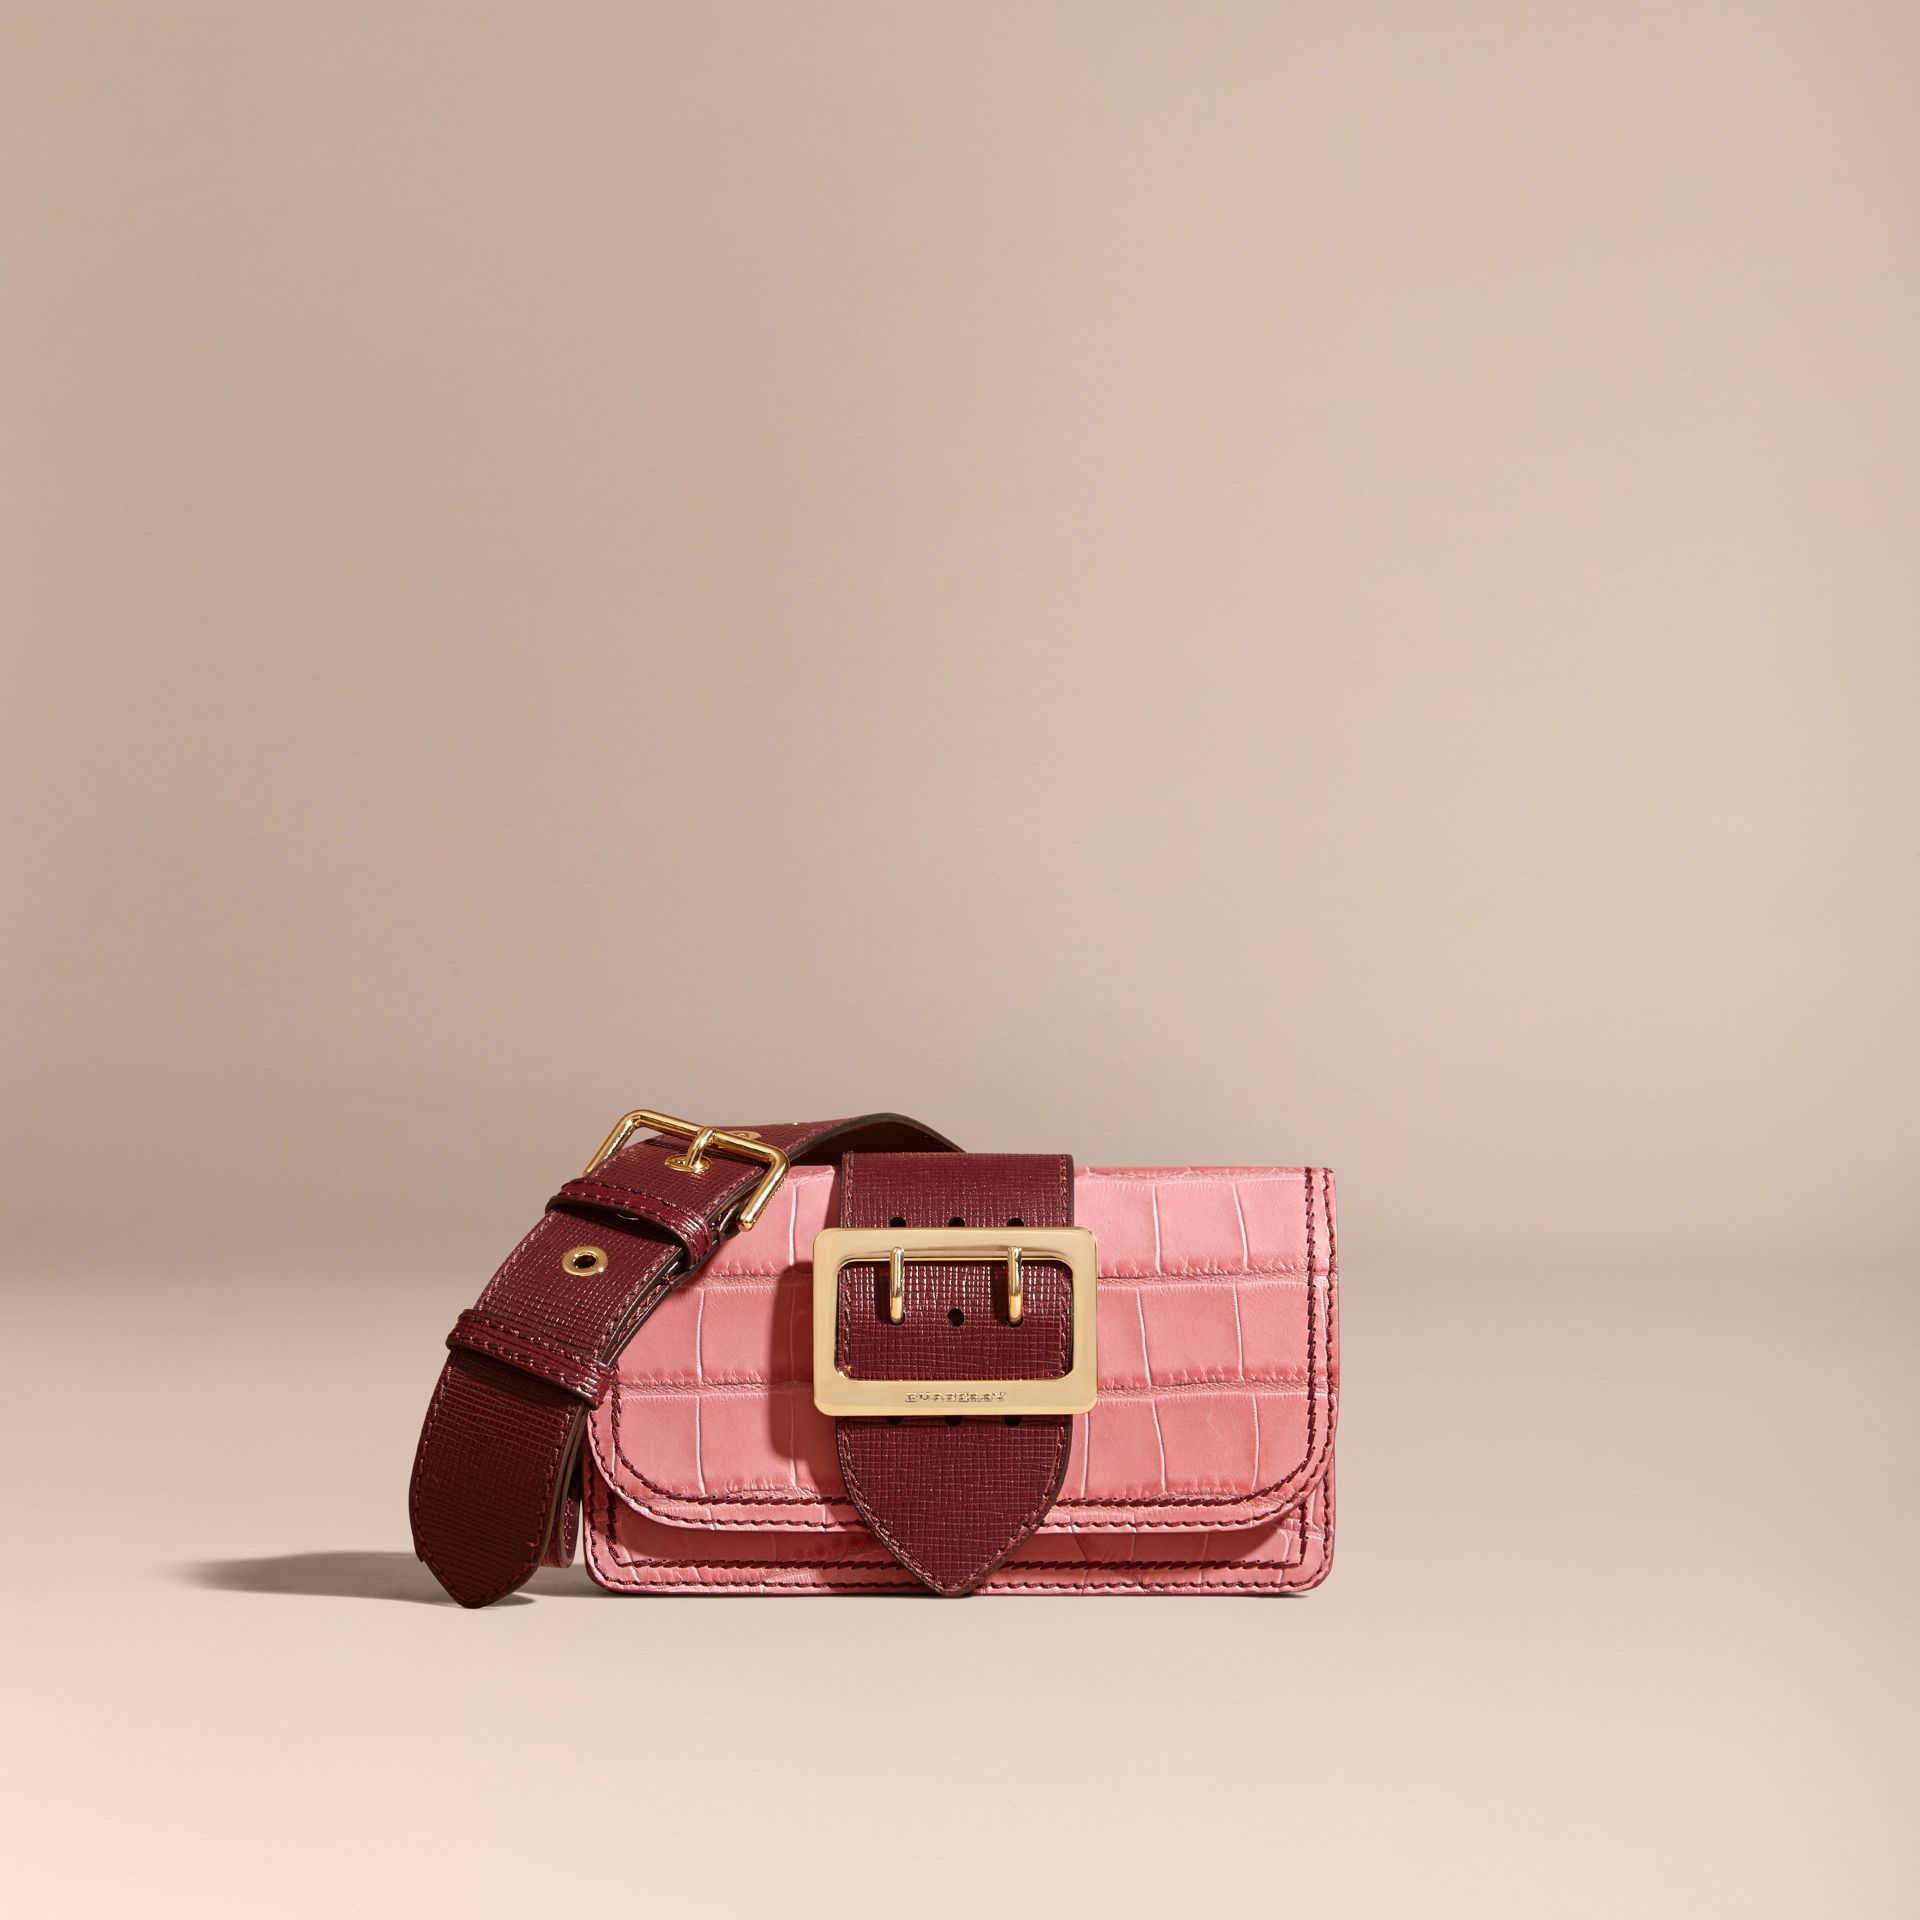 The Small Buckle Bag in Alligator and Leather in Dusky Pink/ Burgundy - Women | Burberry United States - gallery image 9